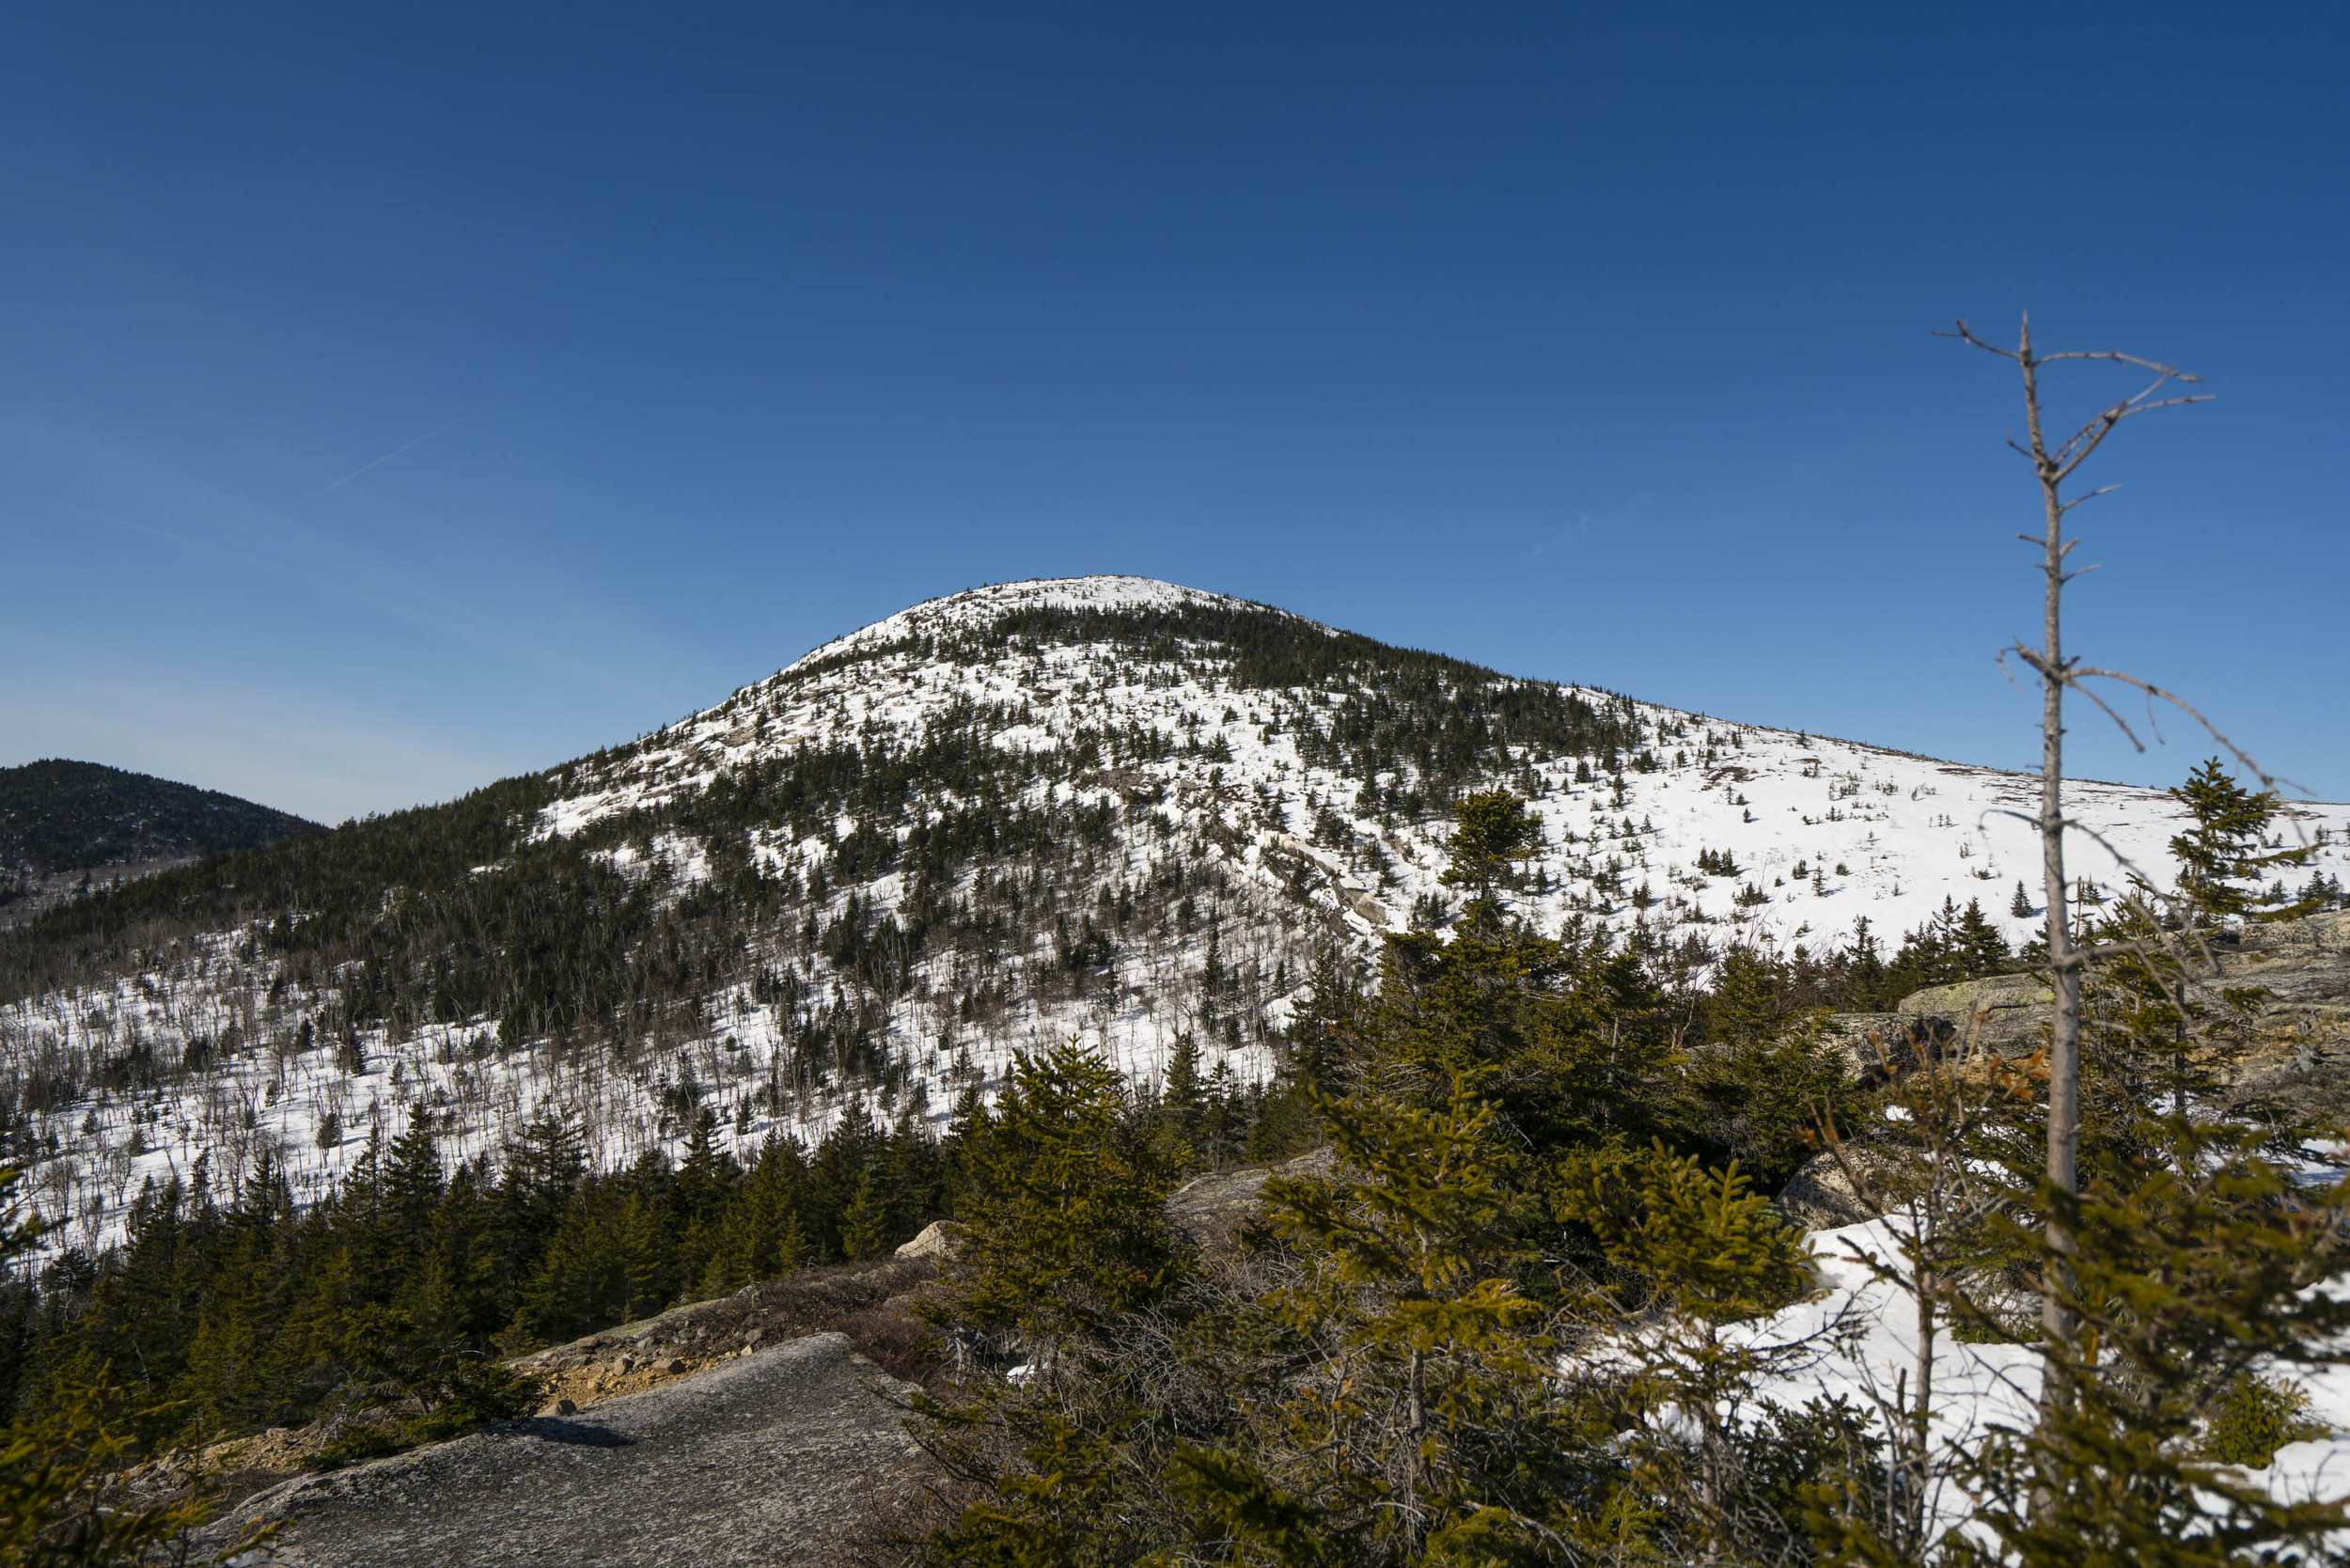 South Baldface as seen from Baldface Knob